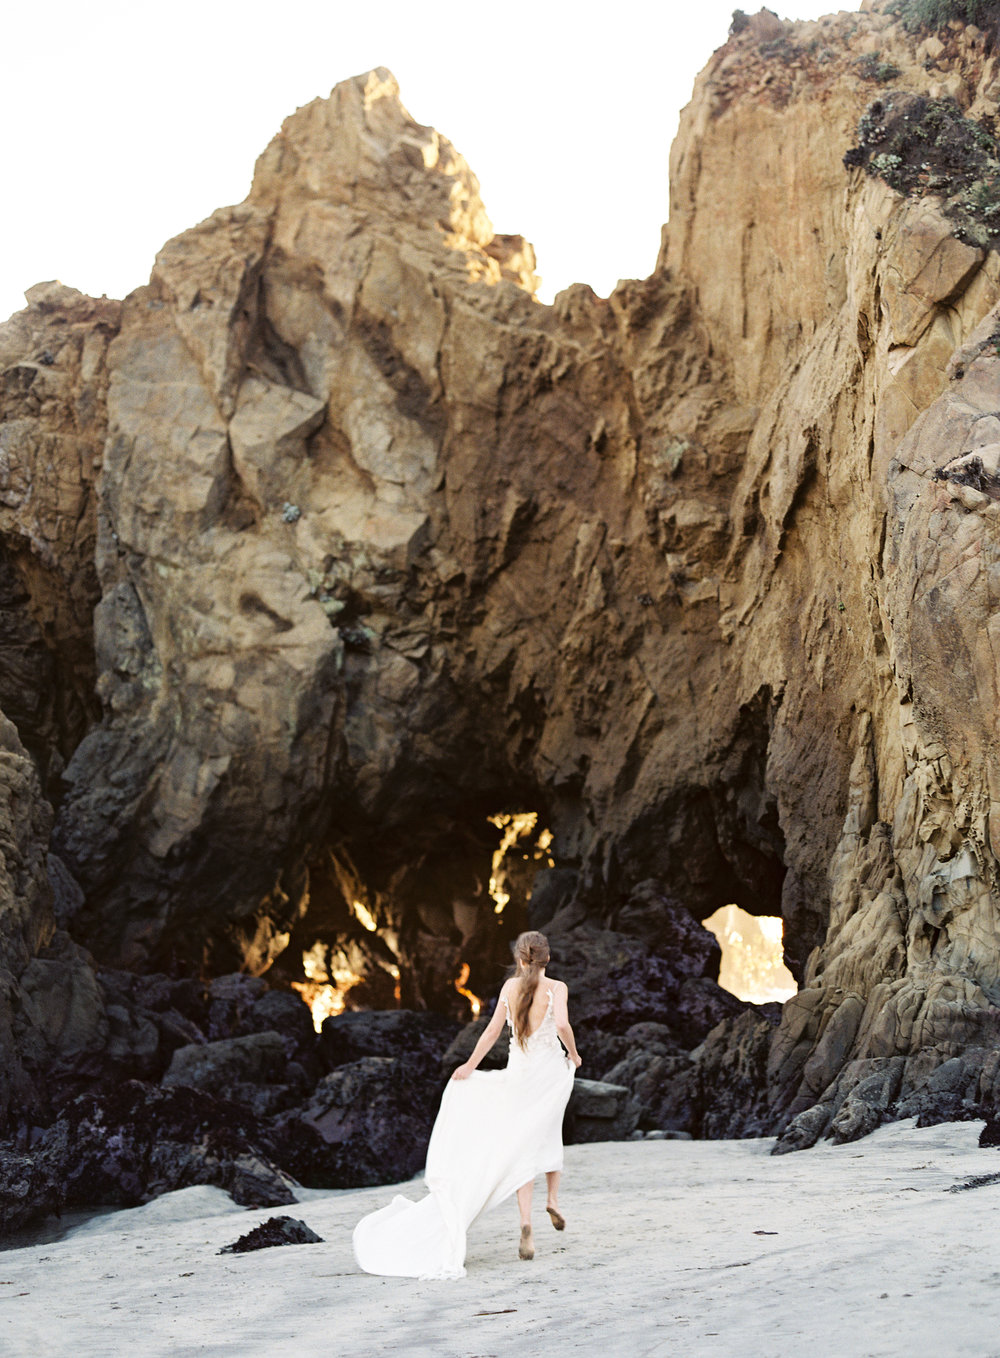 Big_Sur_by_Kayla_Barker_083.jpg